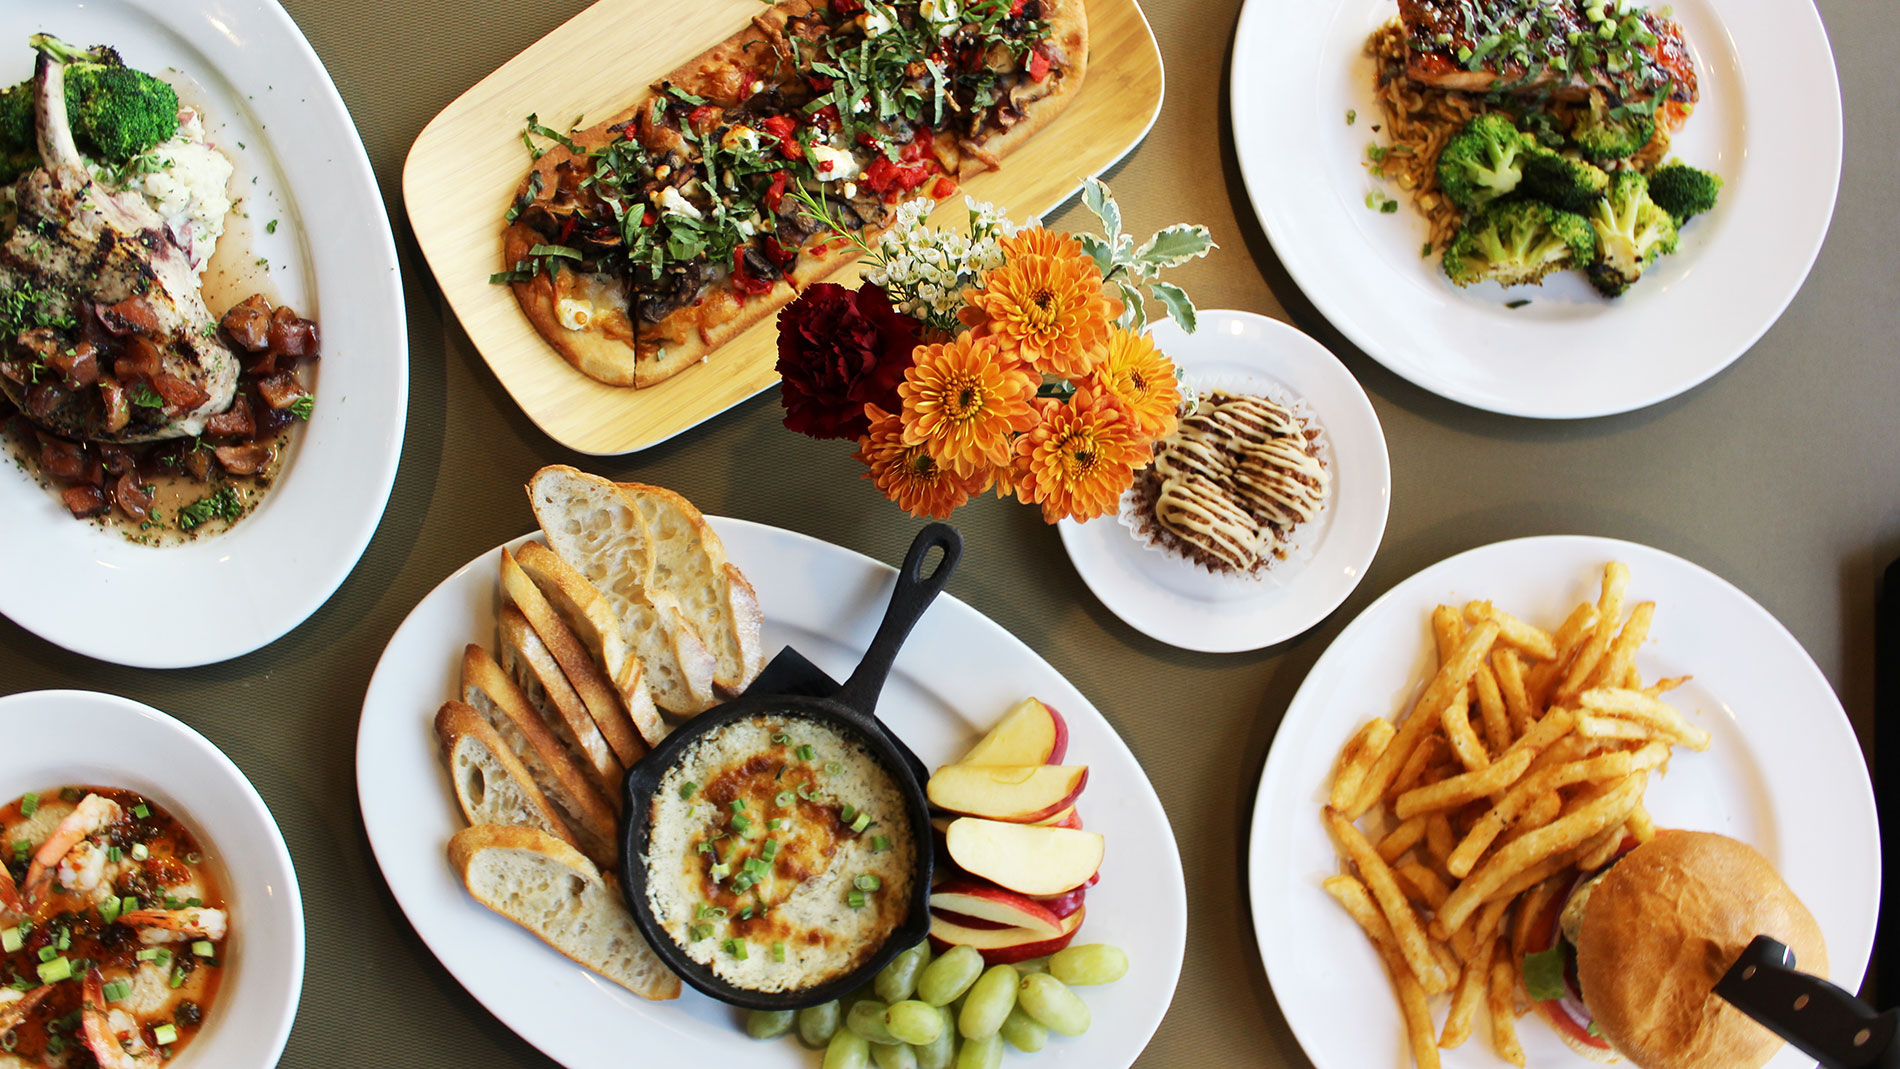 a variety of dishes on a table